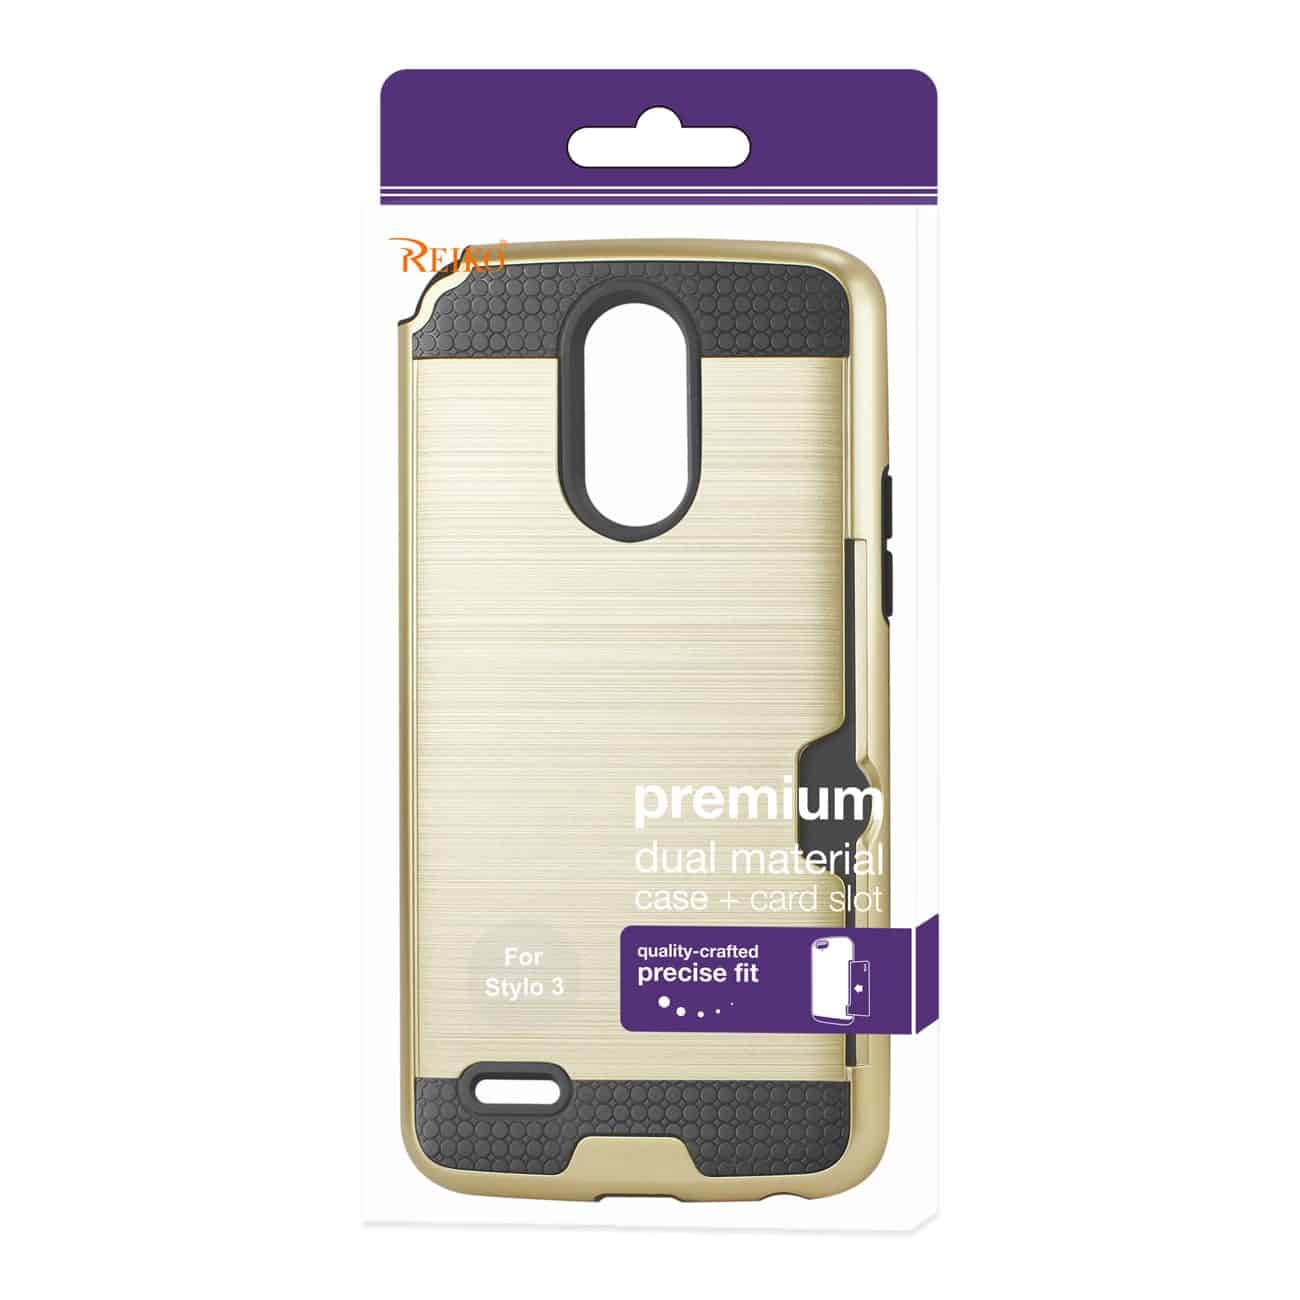 Lg Stylo 3/ Stylus 3 Slim Armor Hybrid Case With Card Holder In Gold